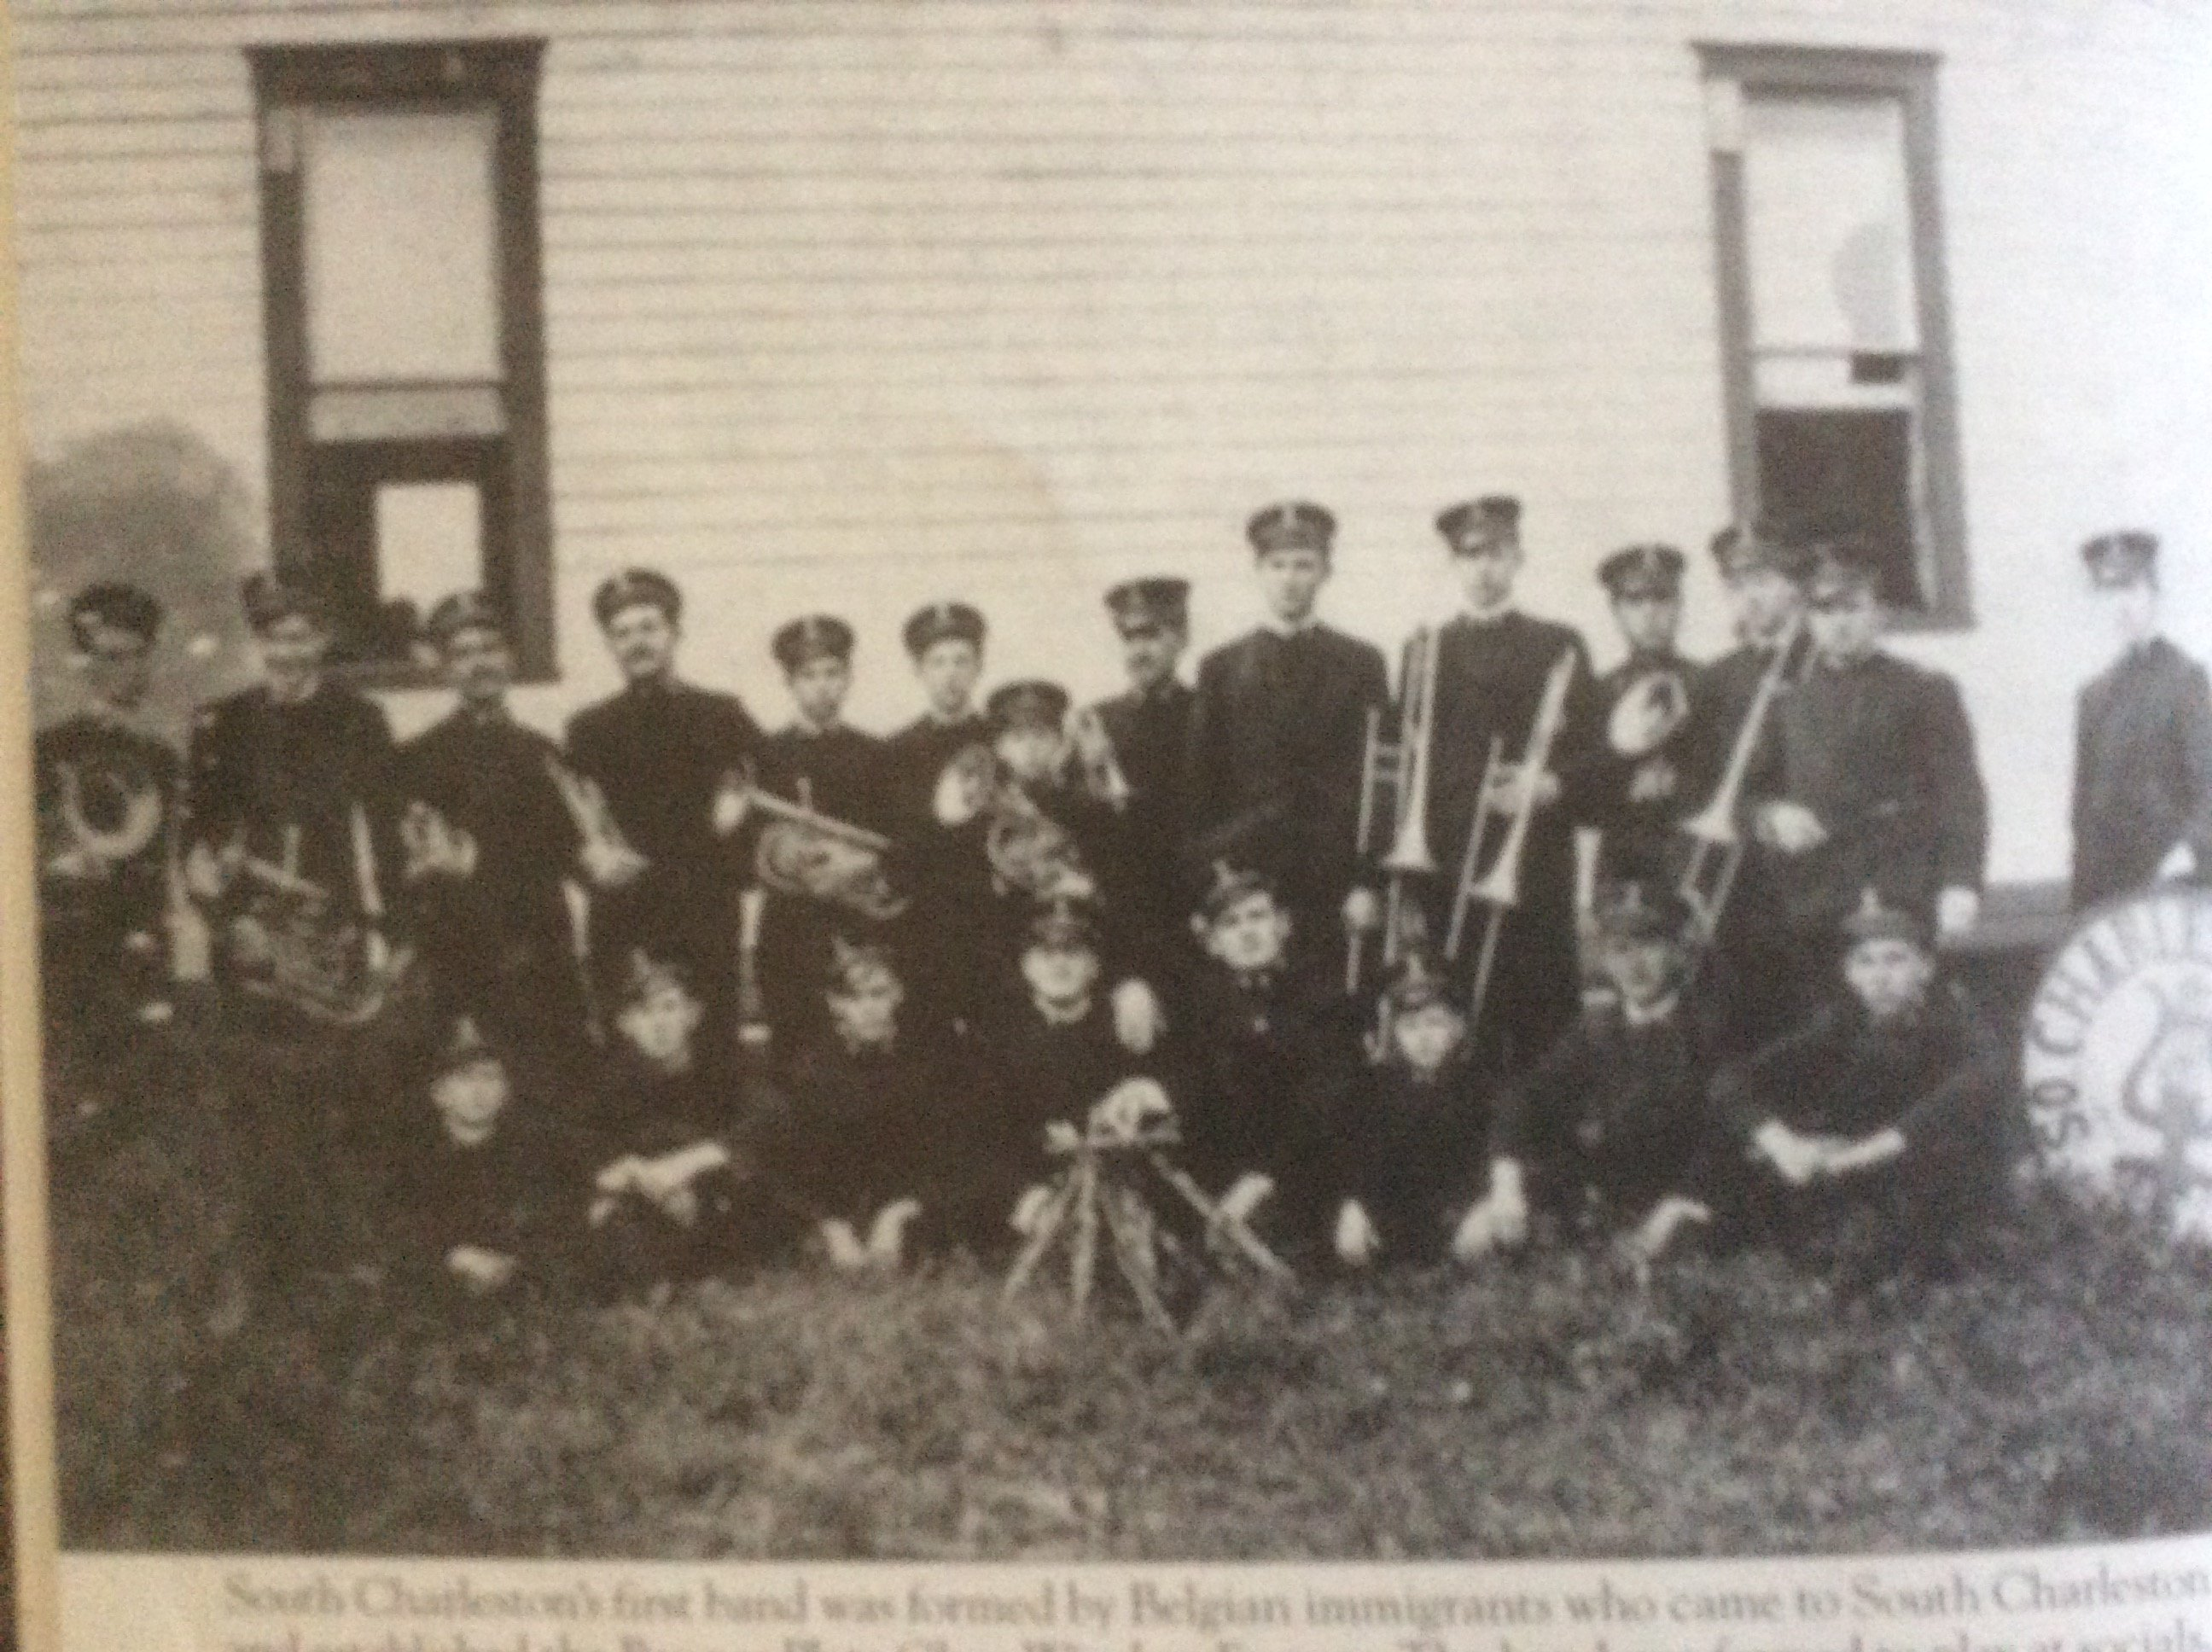 Taken circa 1914, South Charleston's first band was formed by Belgian immigrants who came to South Charleston and established the Banner Plate Window Factory.